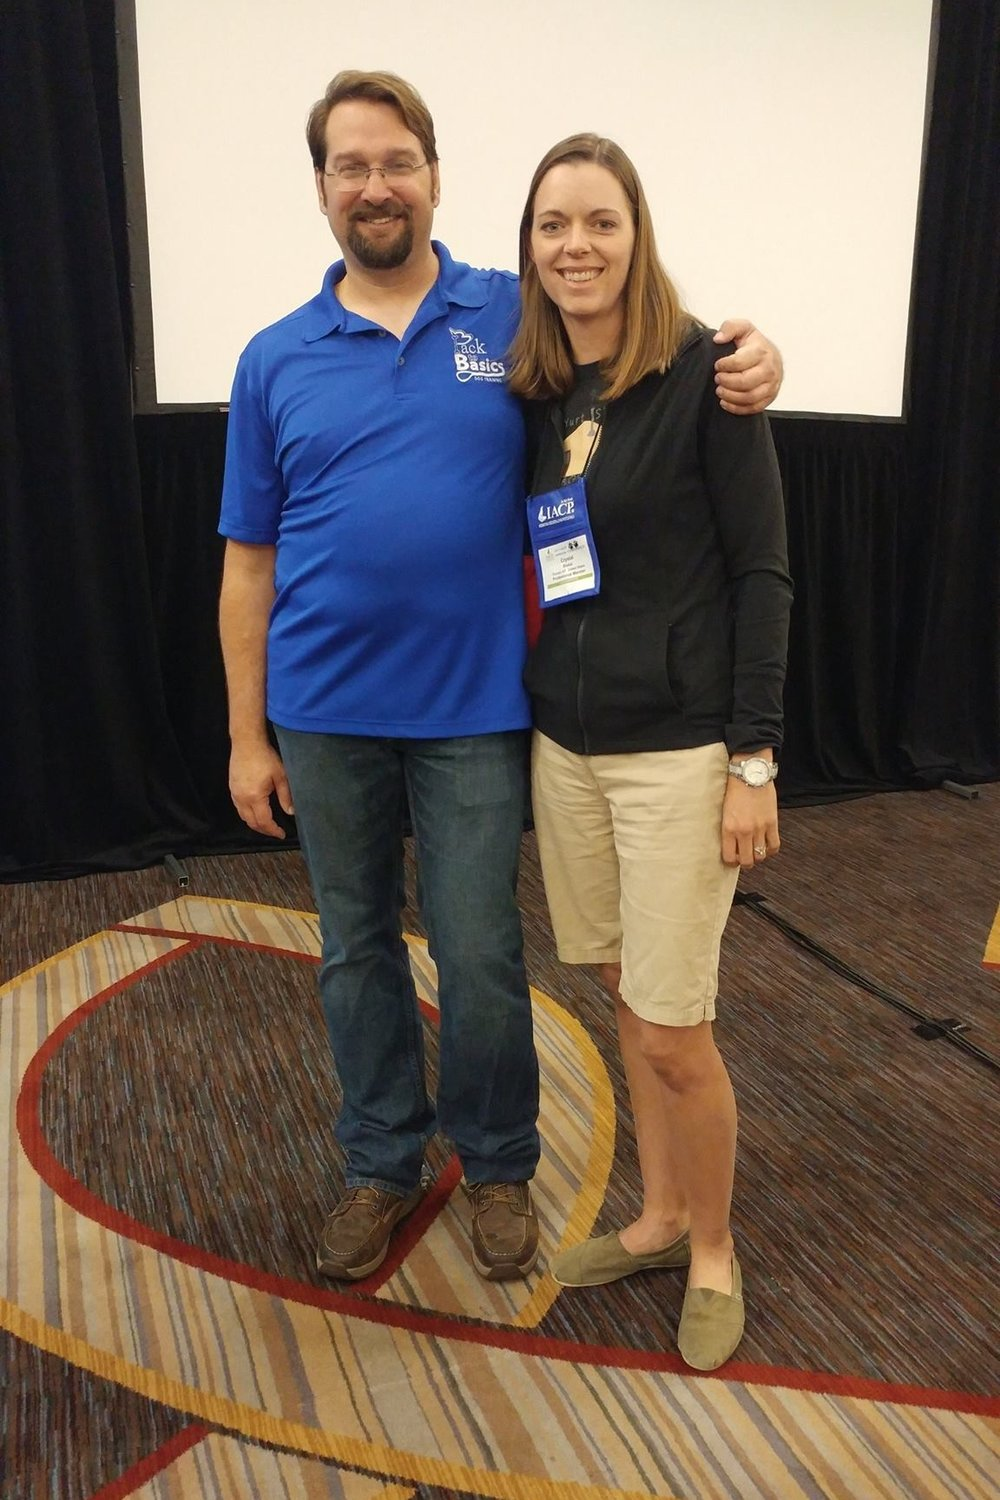 Crystal Blaker from Ruff House Dog Training & Behavior Modification meeting Chad Mackin at the 2017 IACP Conference in St. Louis.